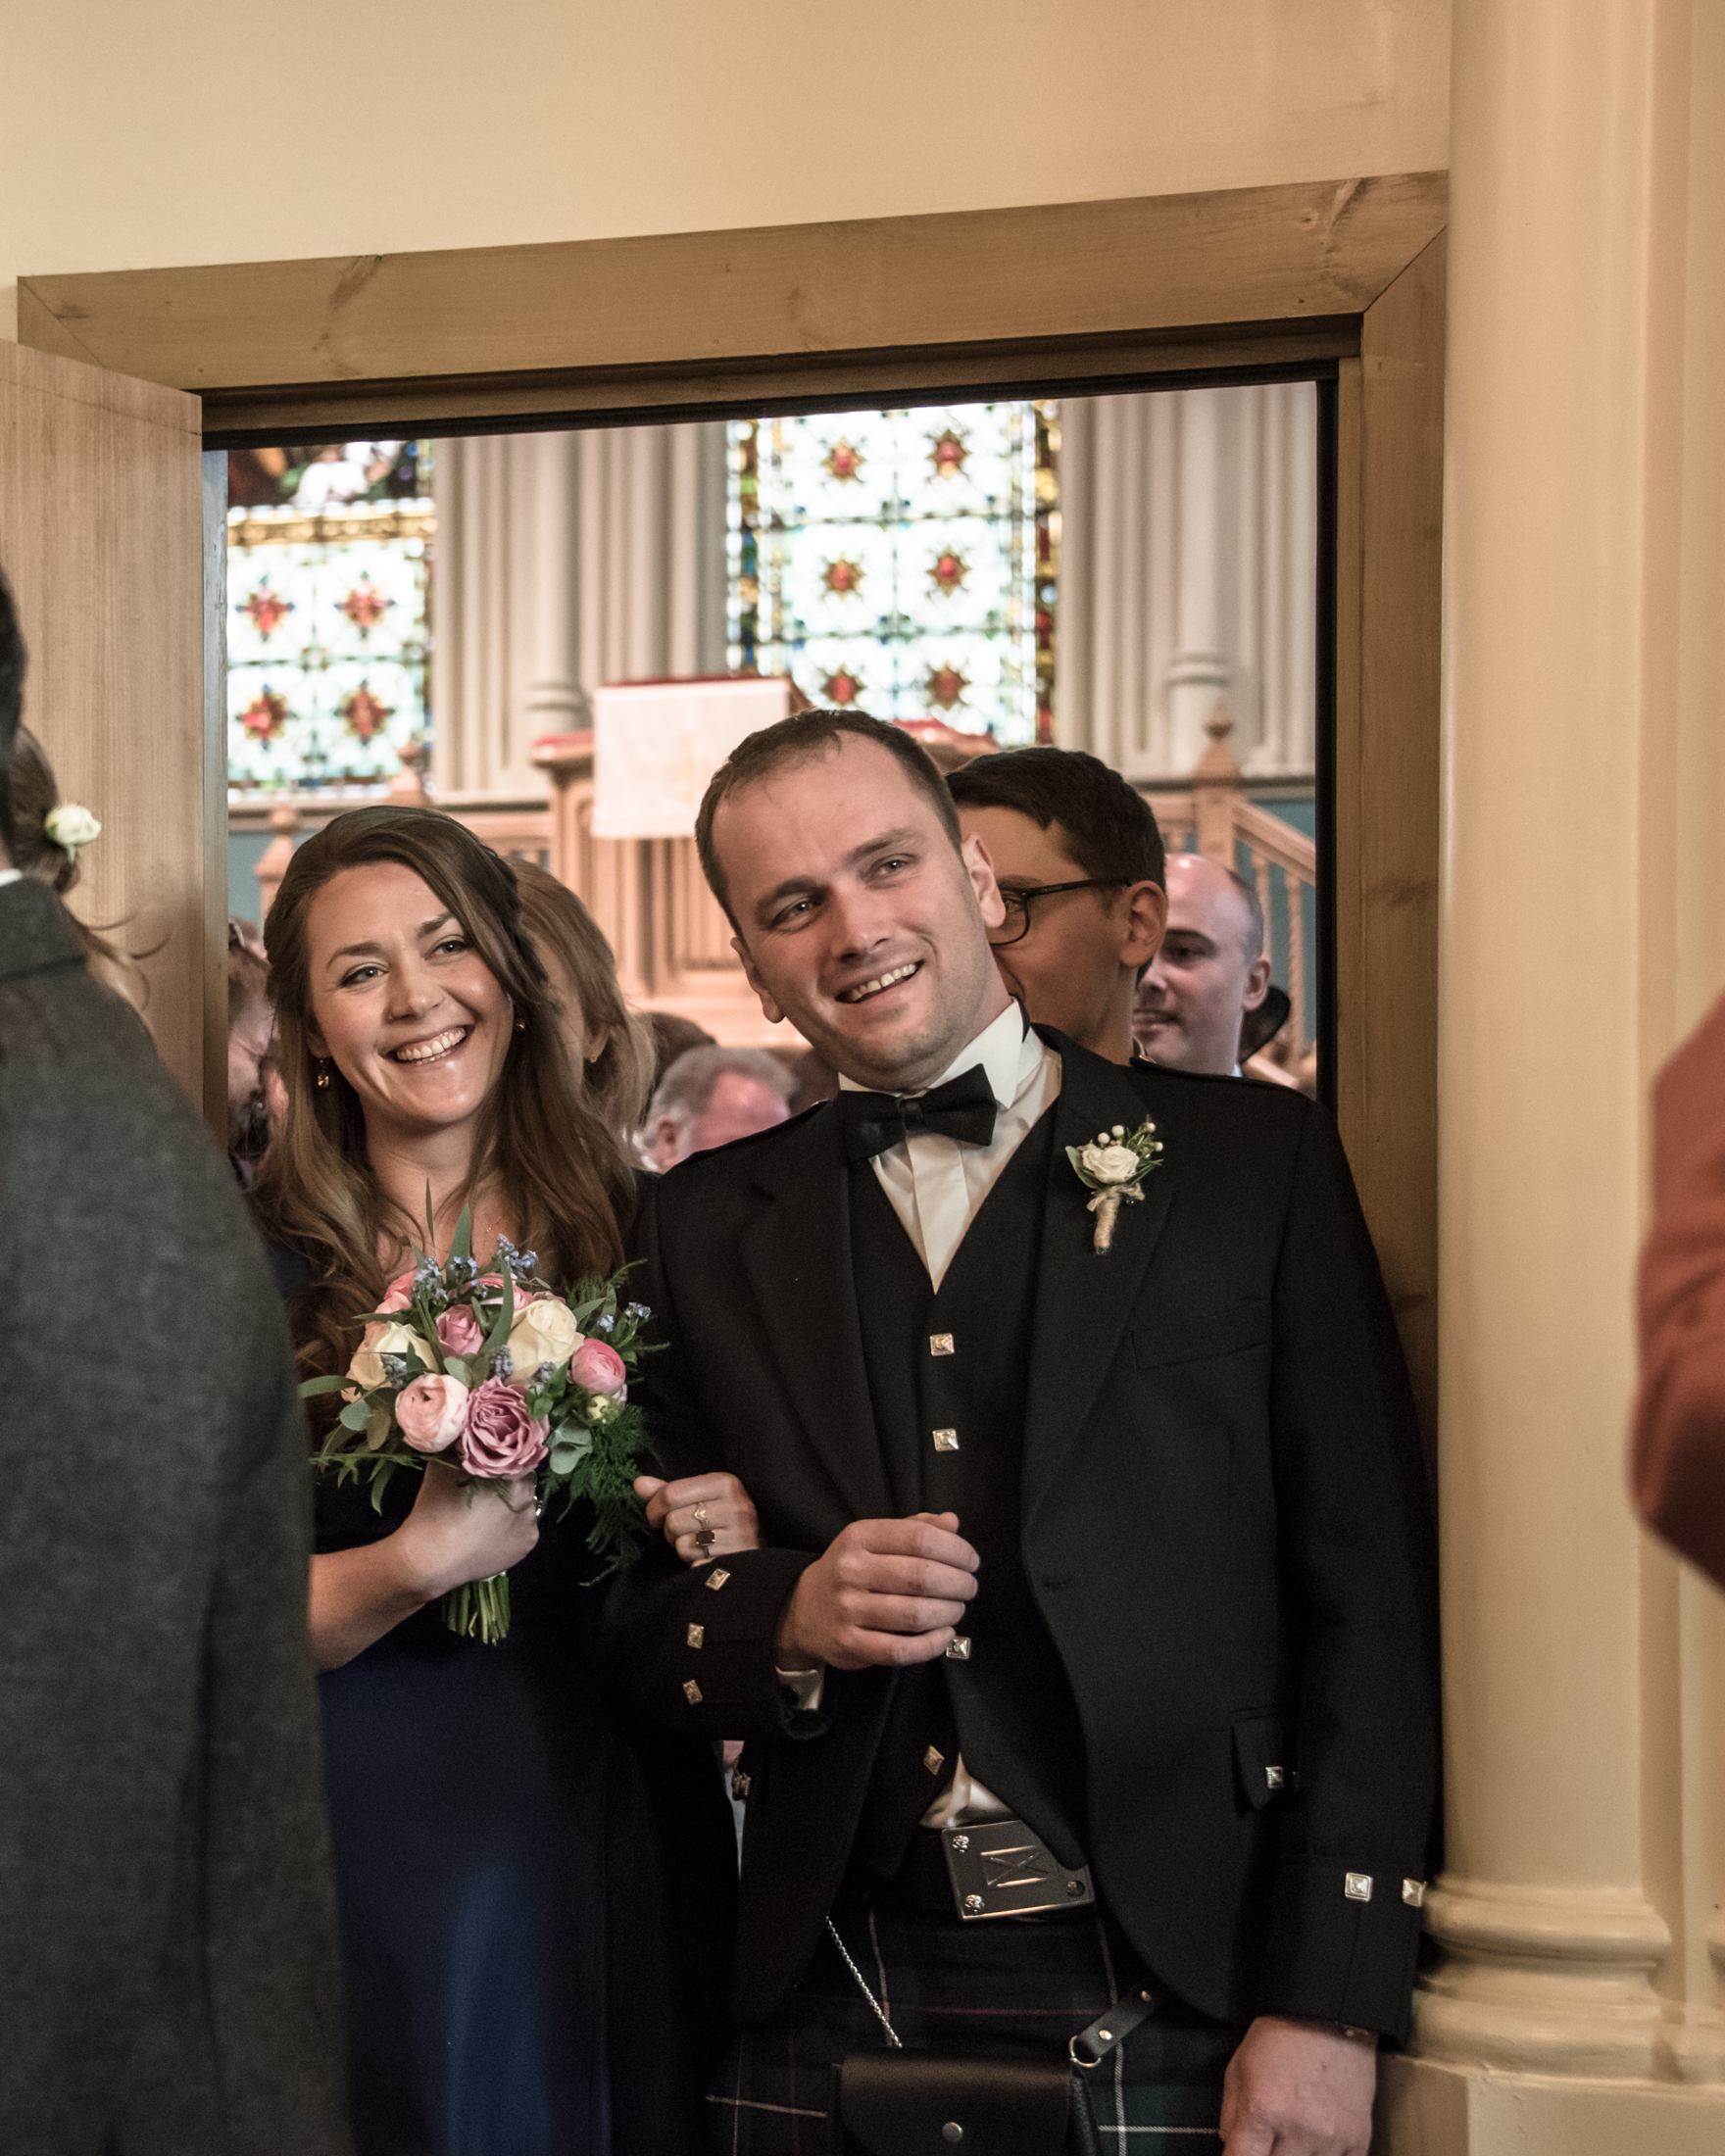 2016-04-02 SIONED AND NEIL FALKLAND MYRES CASTLE151219.jpg